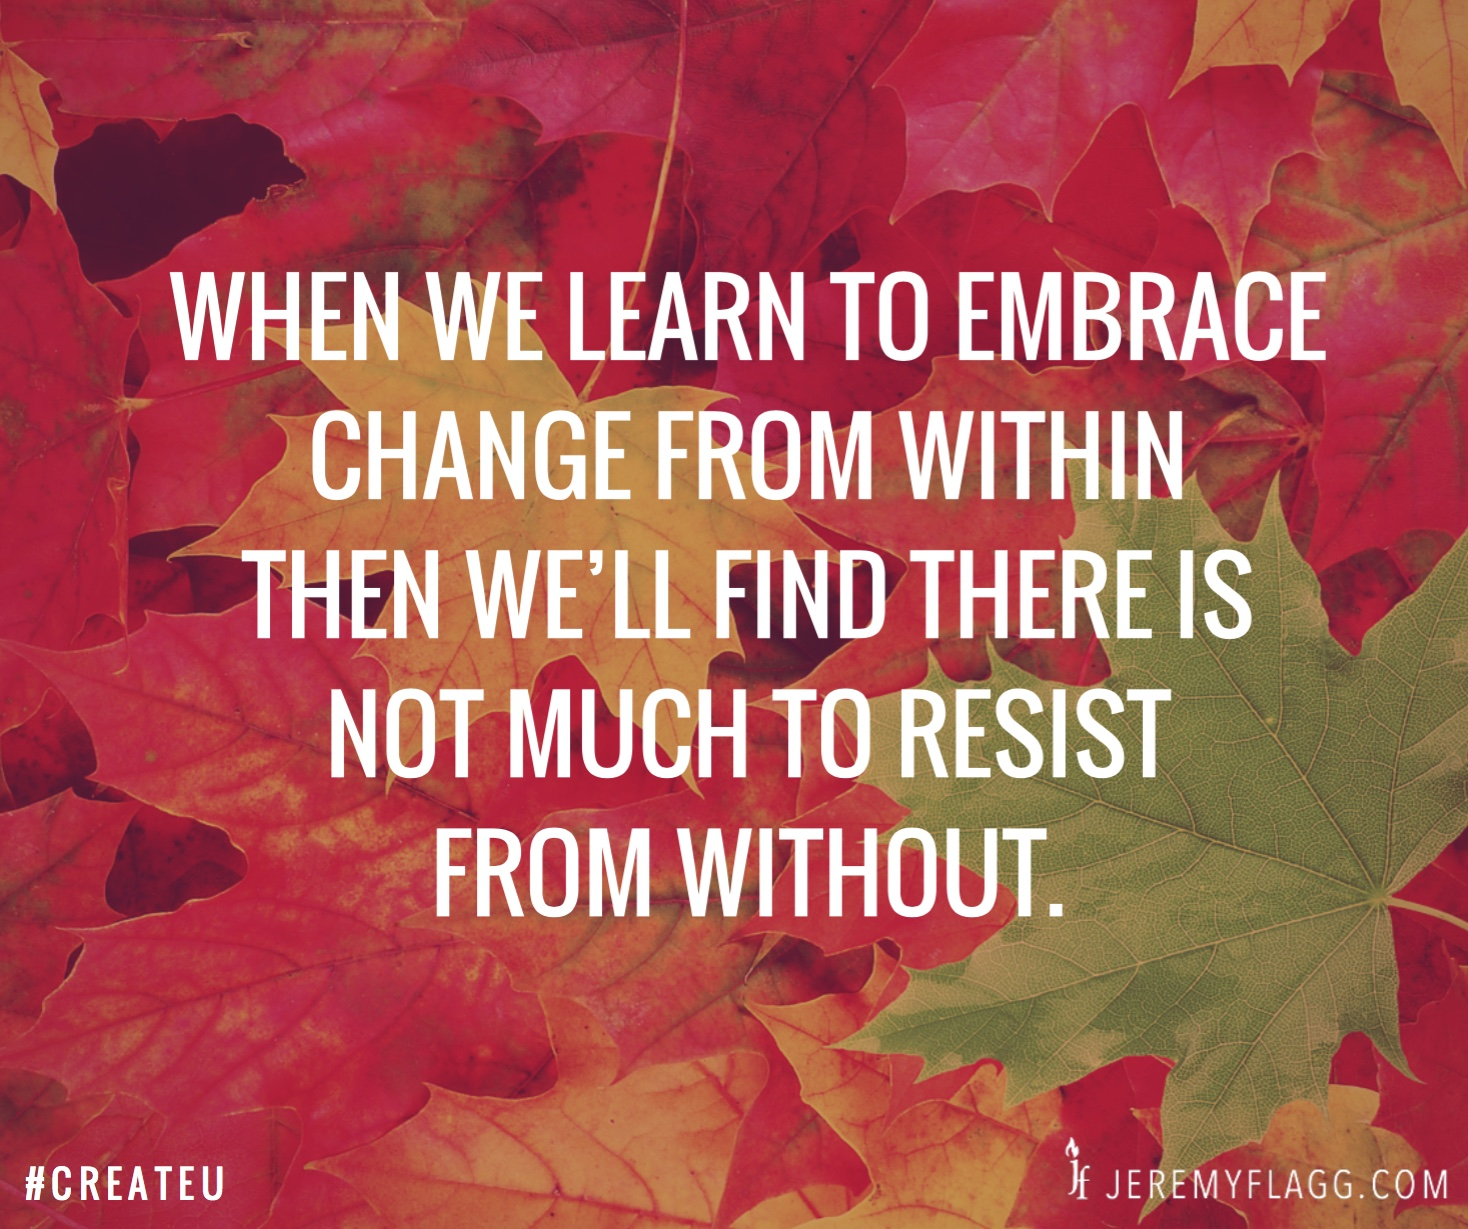 Embrace-change-from-within-Jeremy-Flagg-quote-FB